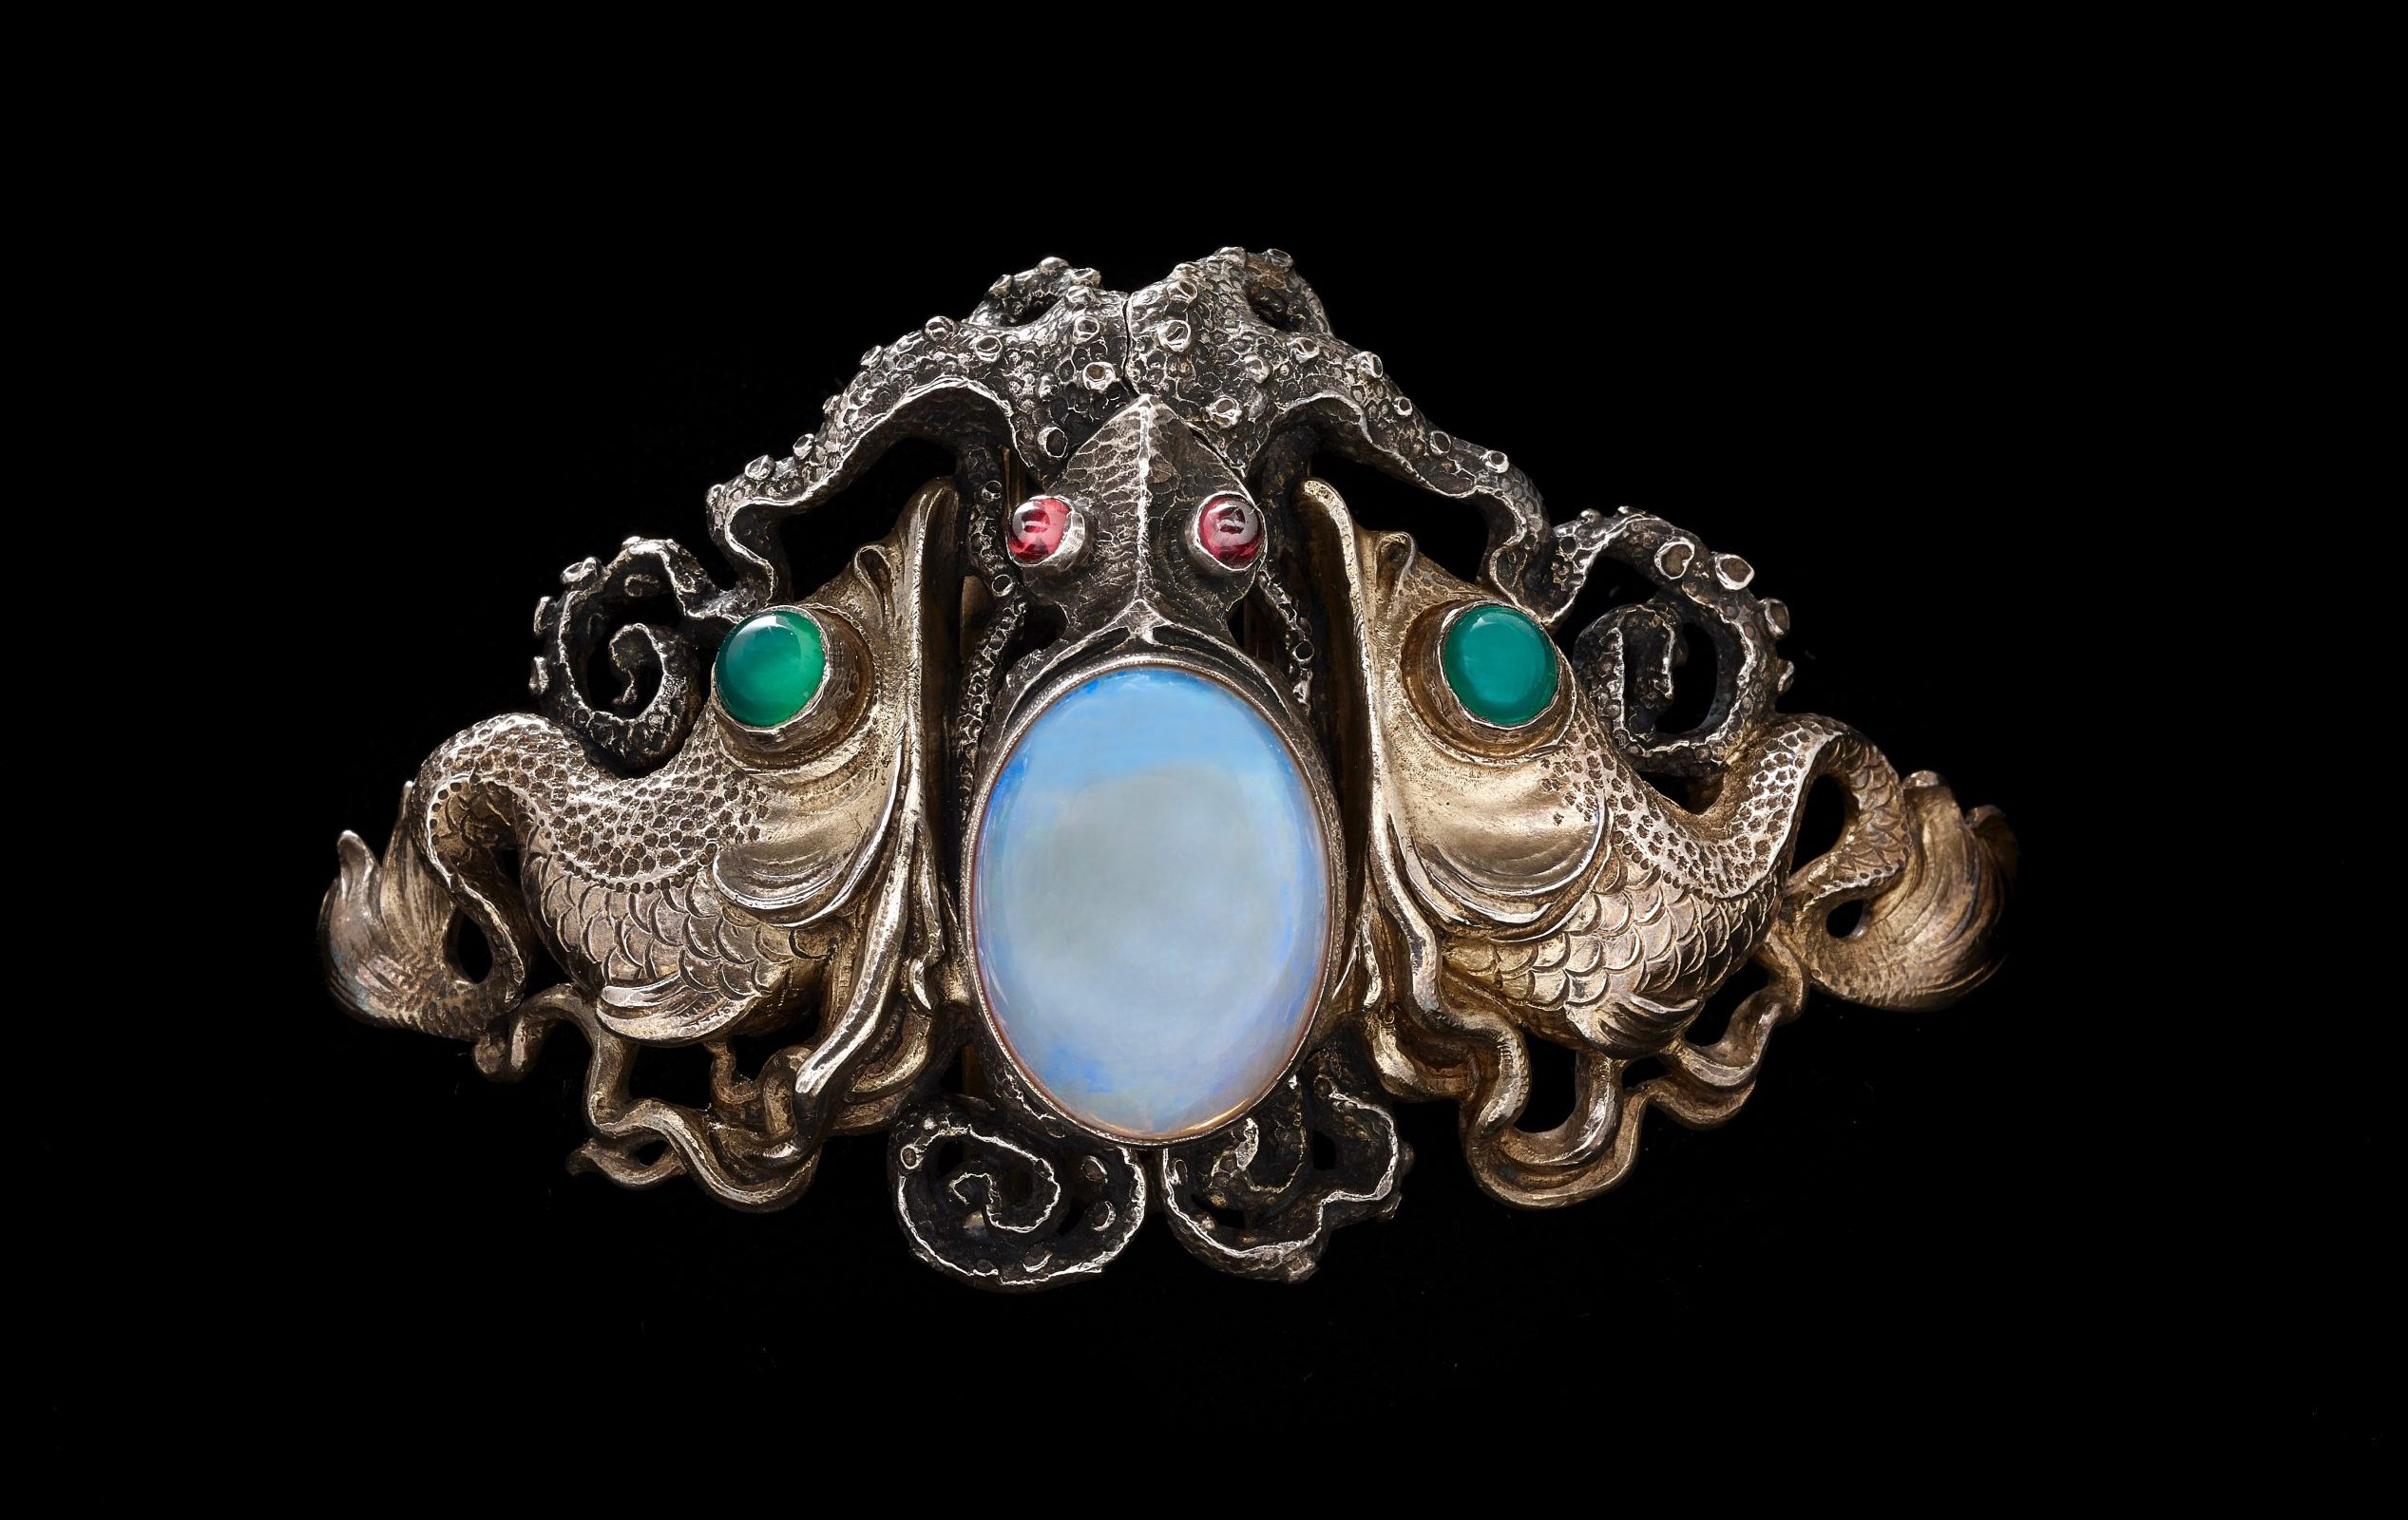 Deep-sea drama abounds in the 'Octupus Waist Clasp' made by Wilhelm Lucas von Cranach around 1900. It is one of a staggering 218 pieces in the 'Maker and Muse' show. (photo: John Faier, © The Richard H. Driehaus Museum)